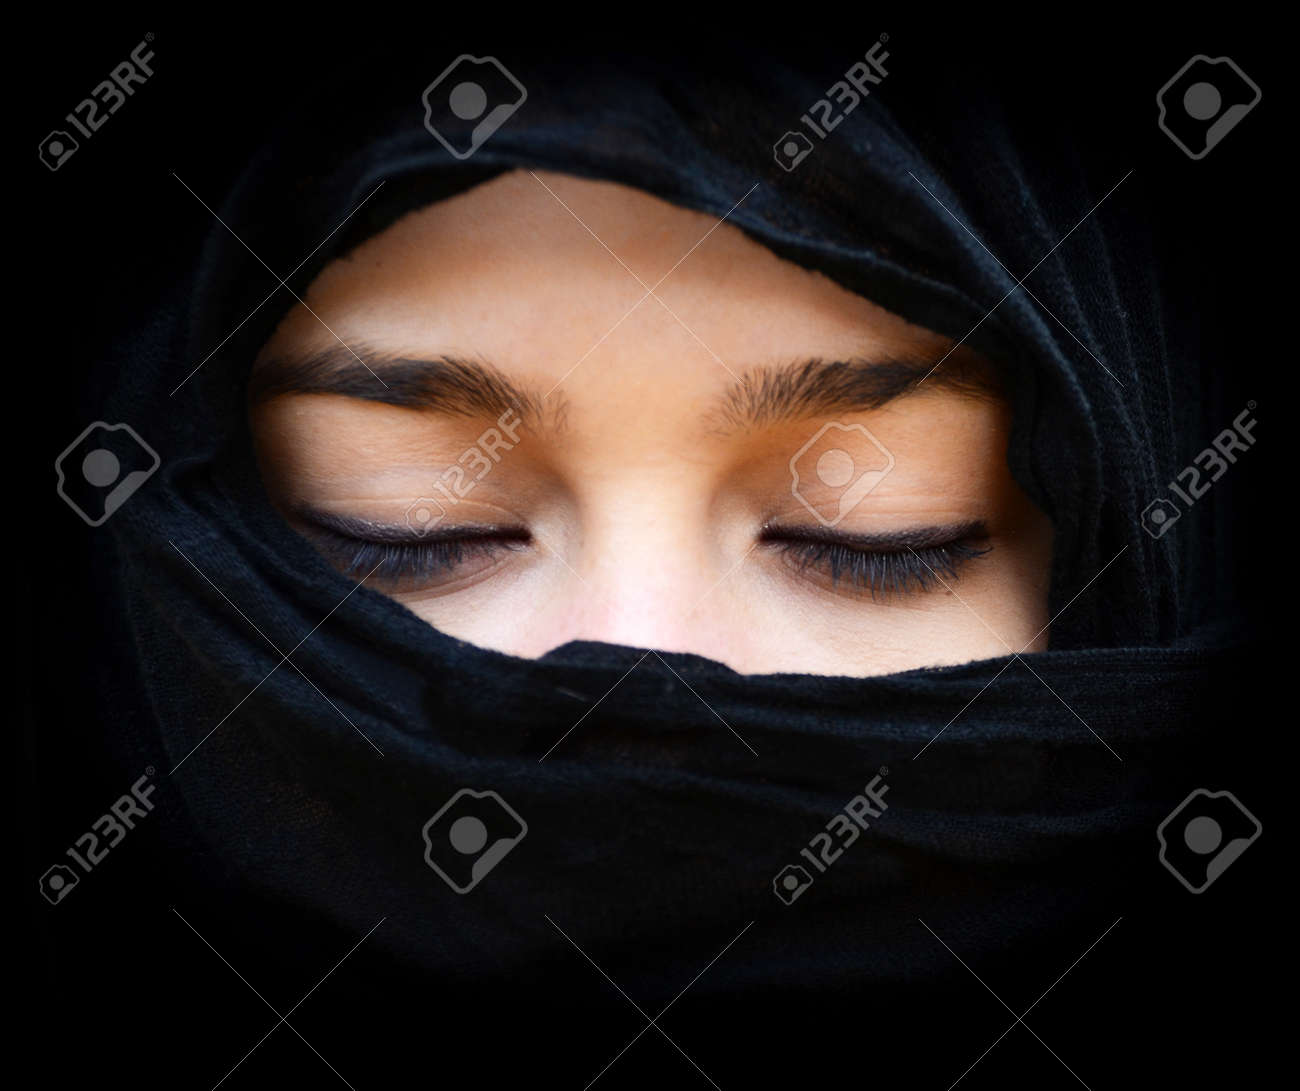 Portait of woman wearing scarf with eyes closed Stock Photo - 16335104